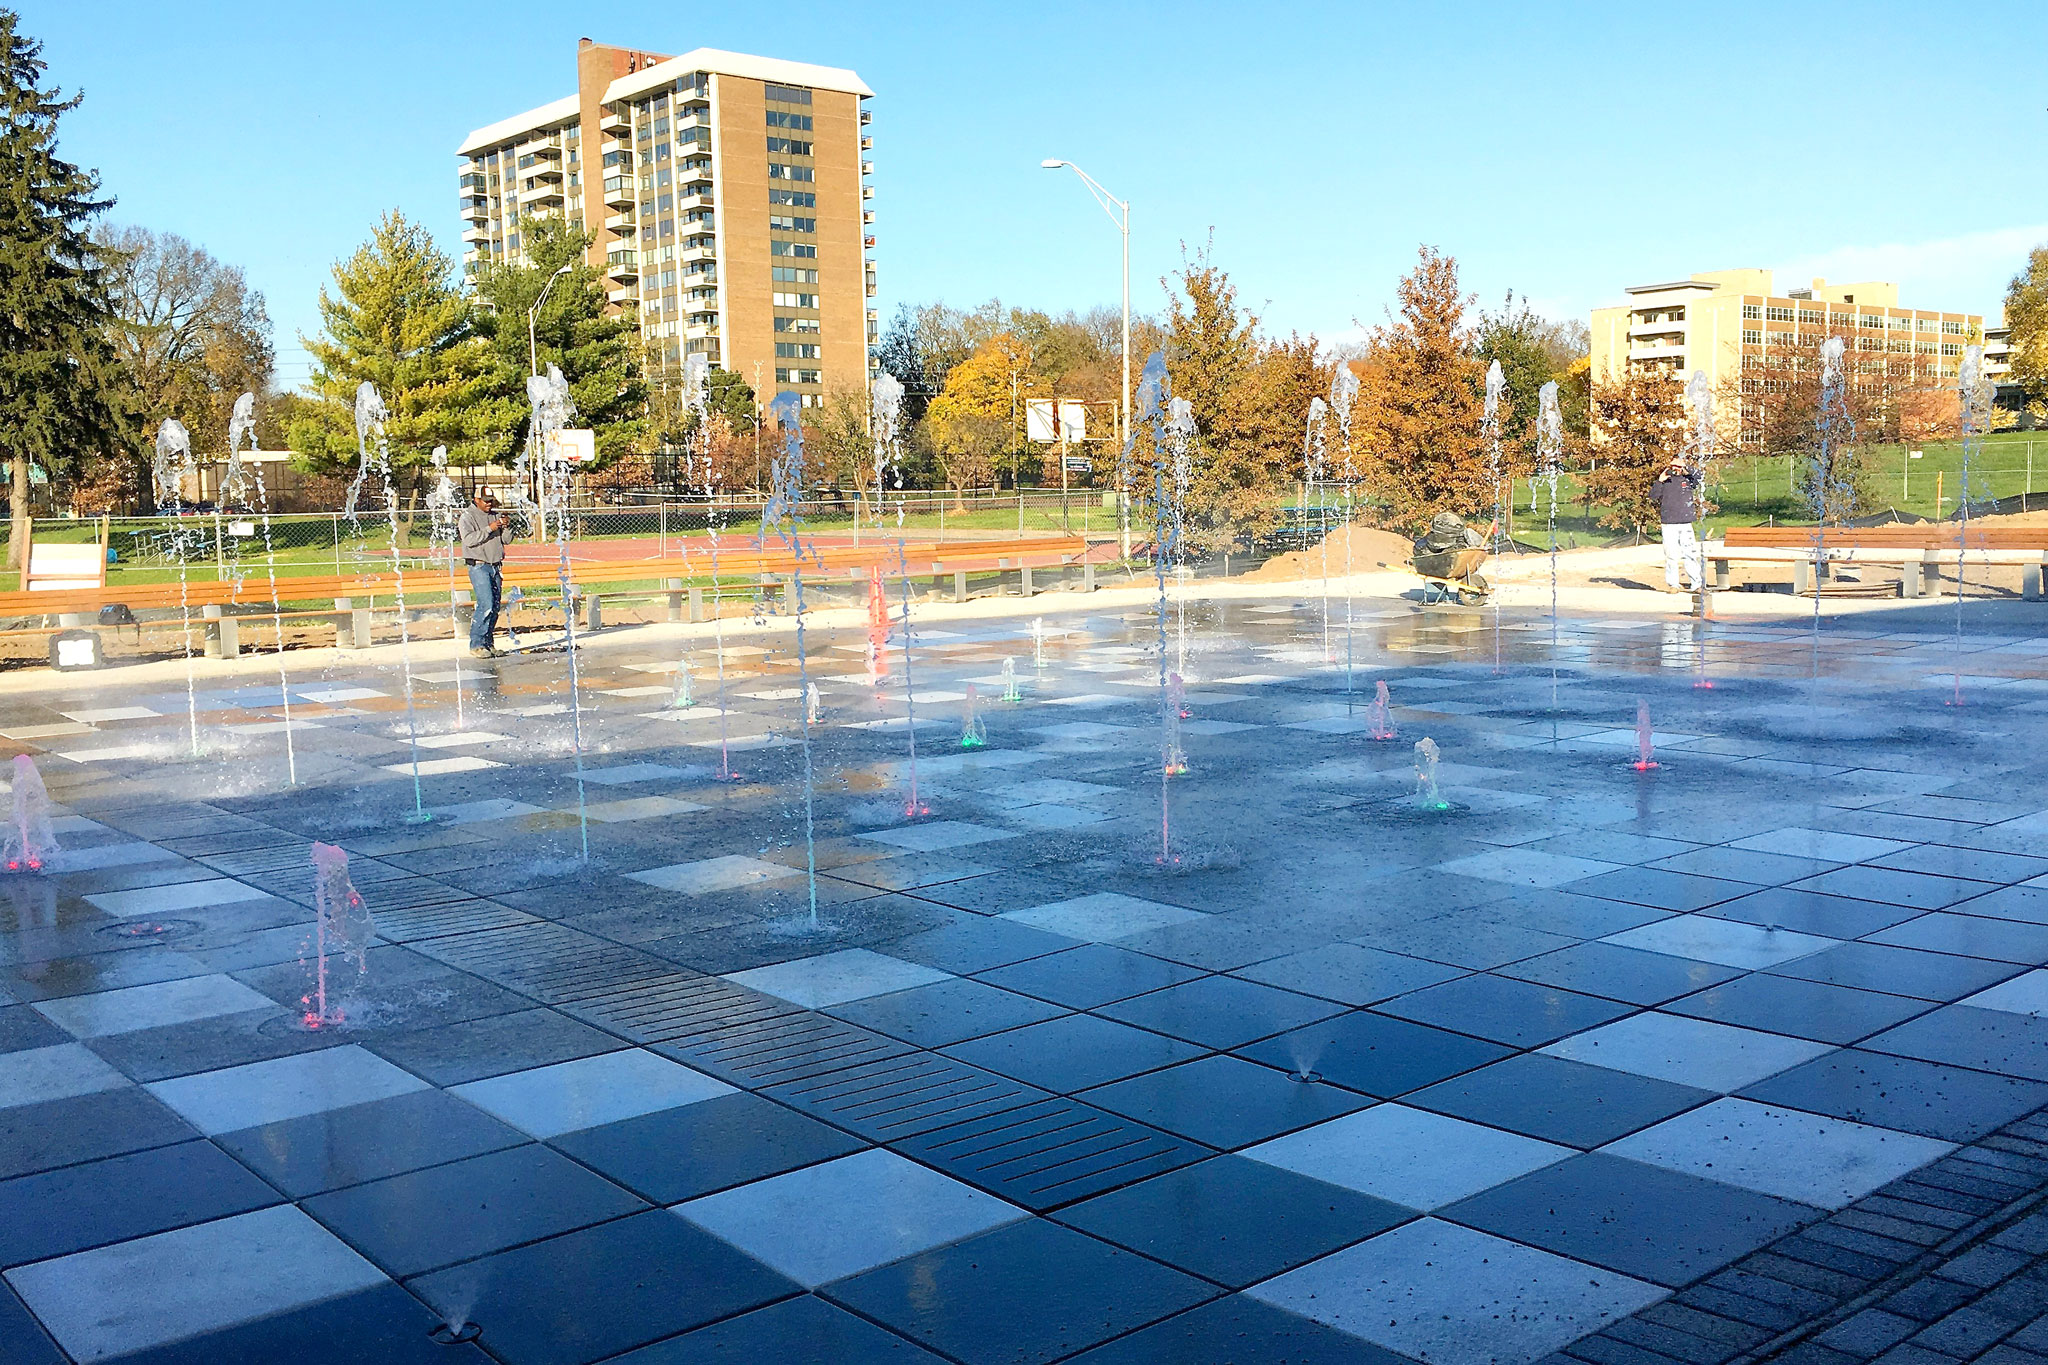 Tarkington Park Interactive Fountain